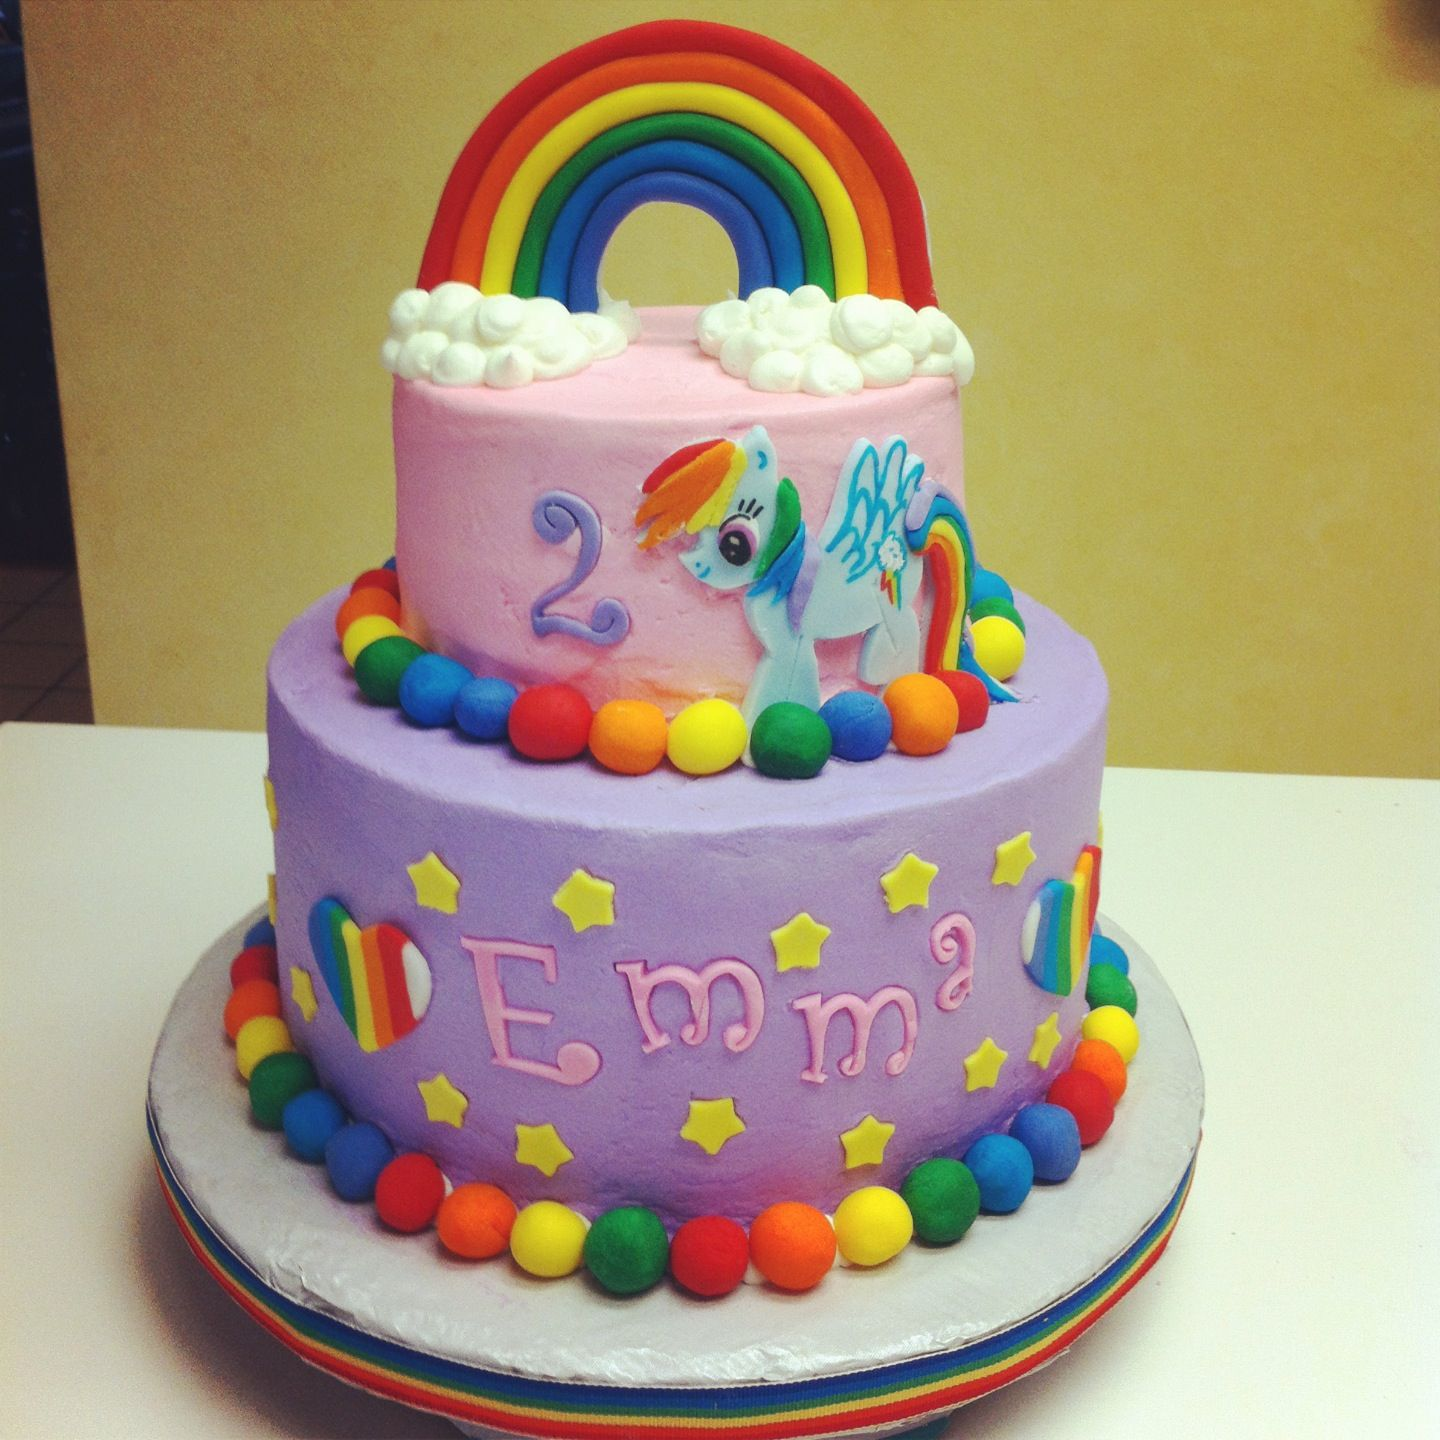 Cake Designs My Little Pony : My Little Pony on Pinterest My Little Pony, Cake ...